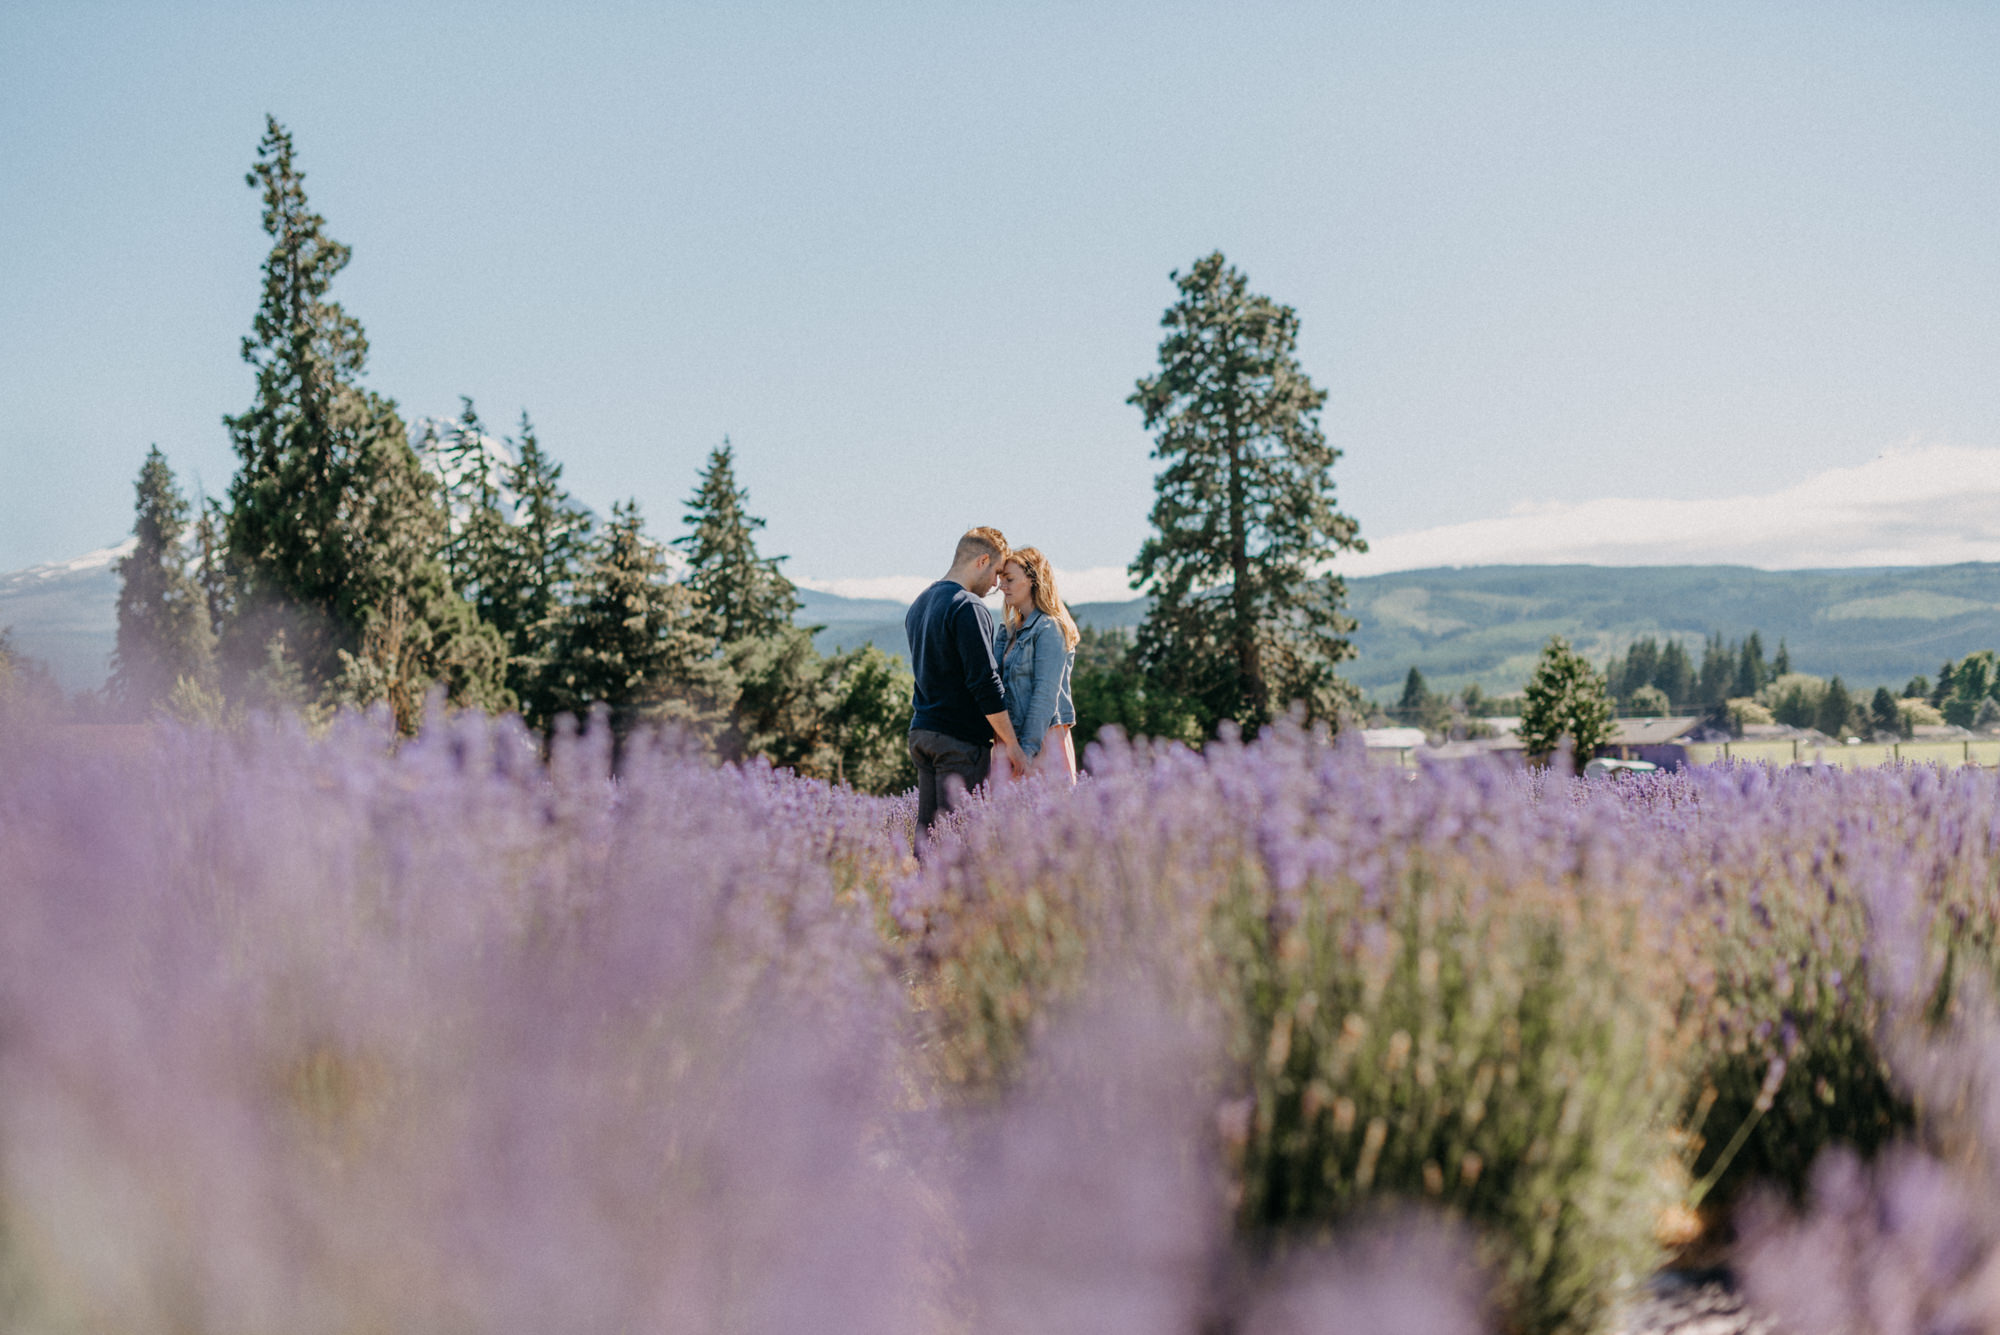 9-Mt-hood-lavender-farms-engagment-couple-summer-7149.jpg